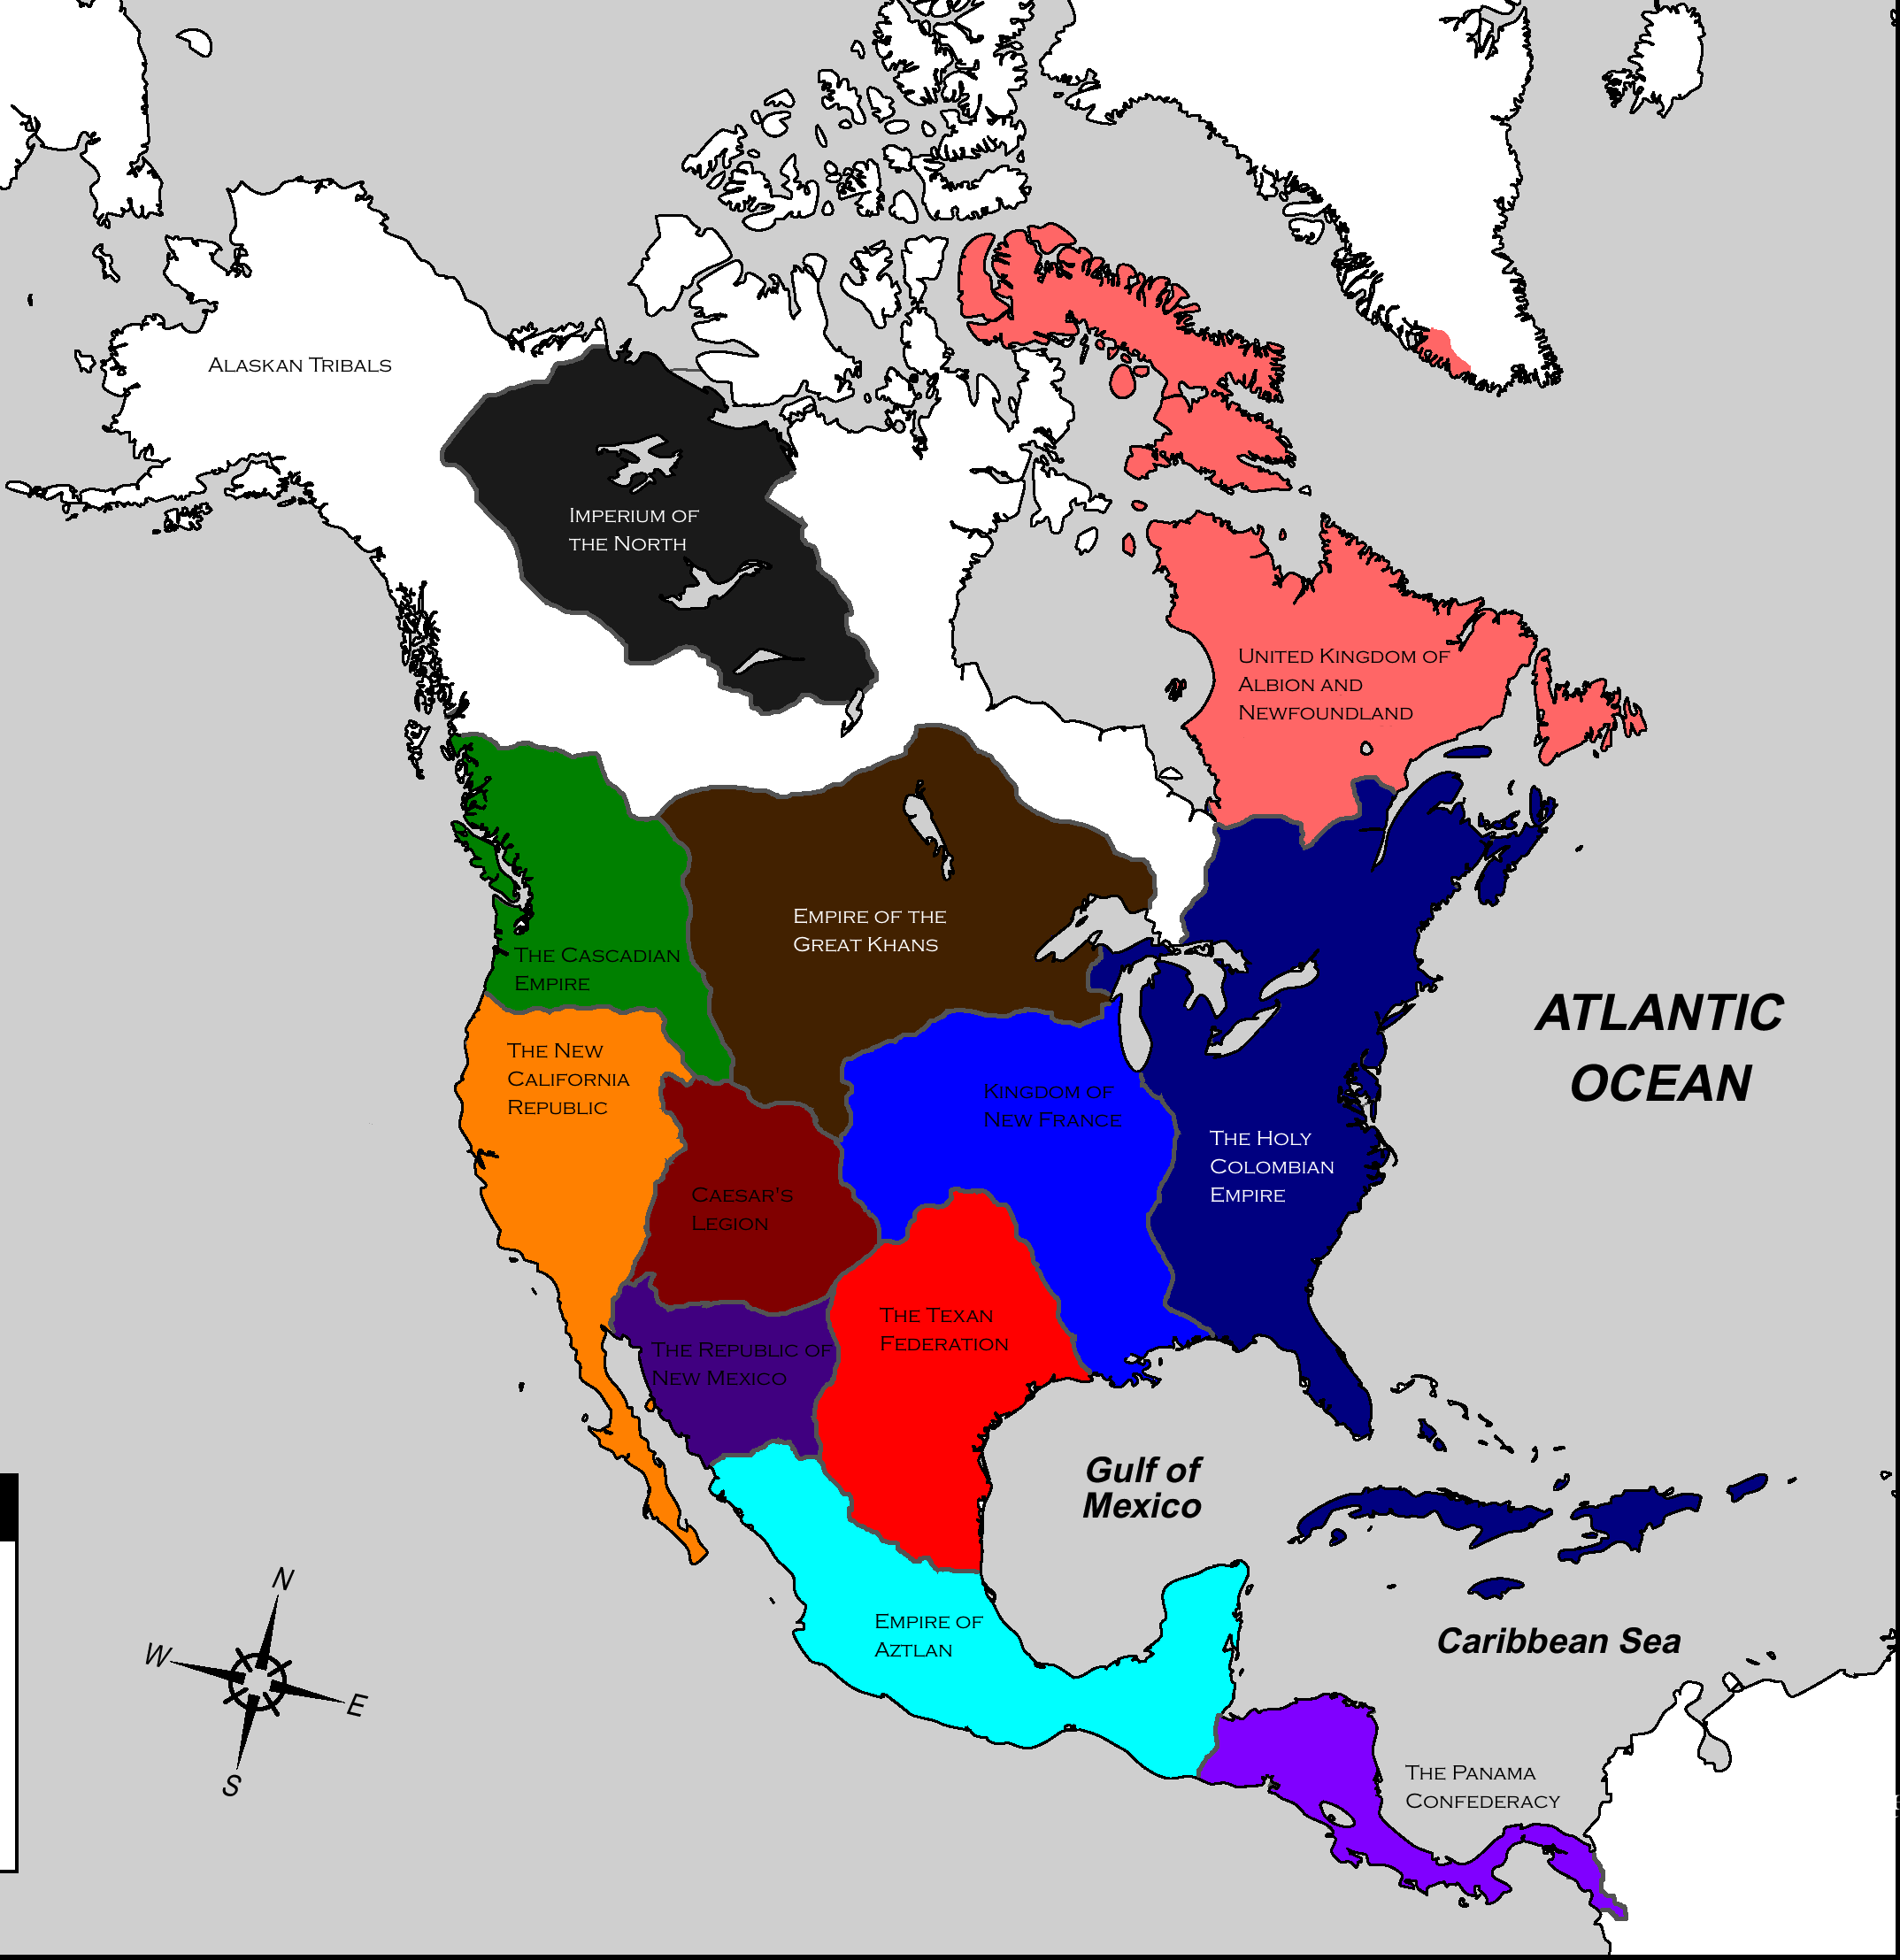 North AmericaFallout by Beastboss on DeviantArt